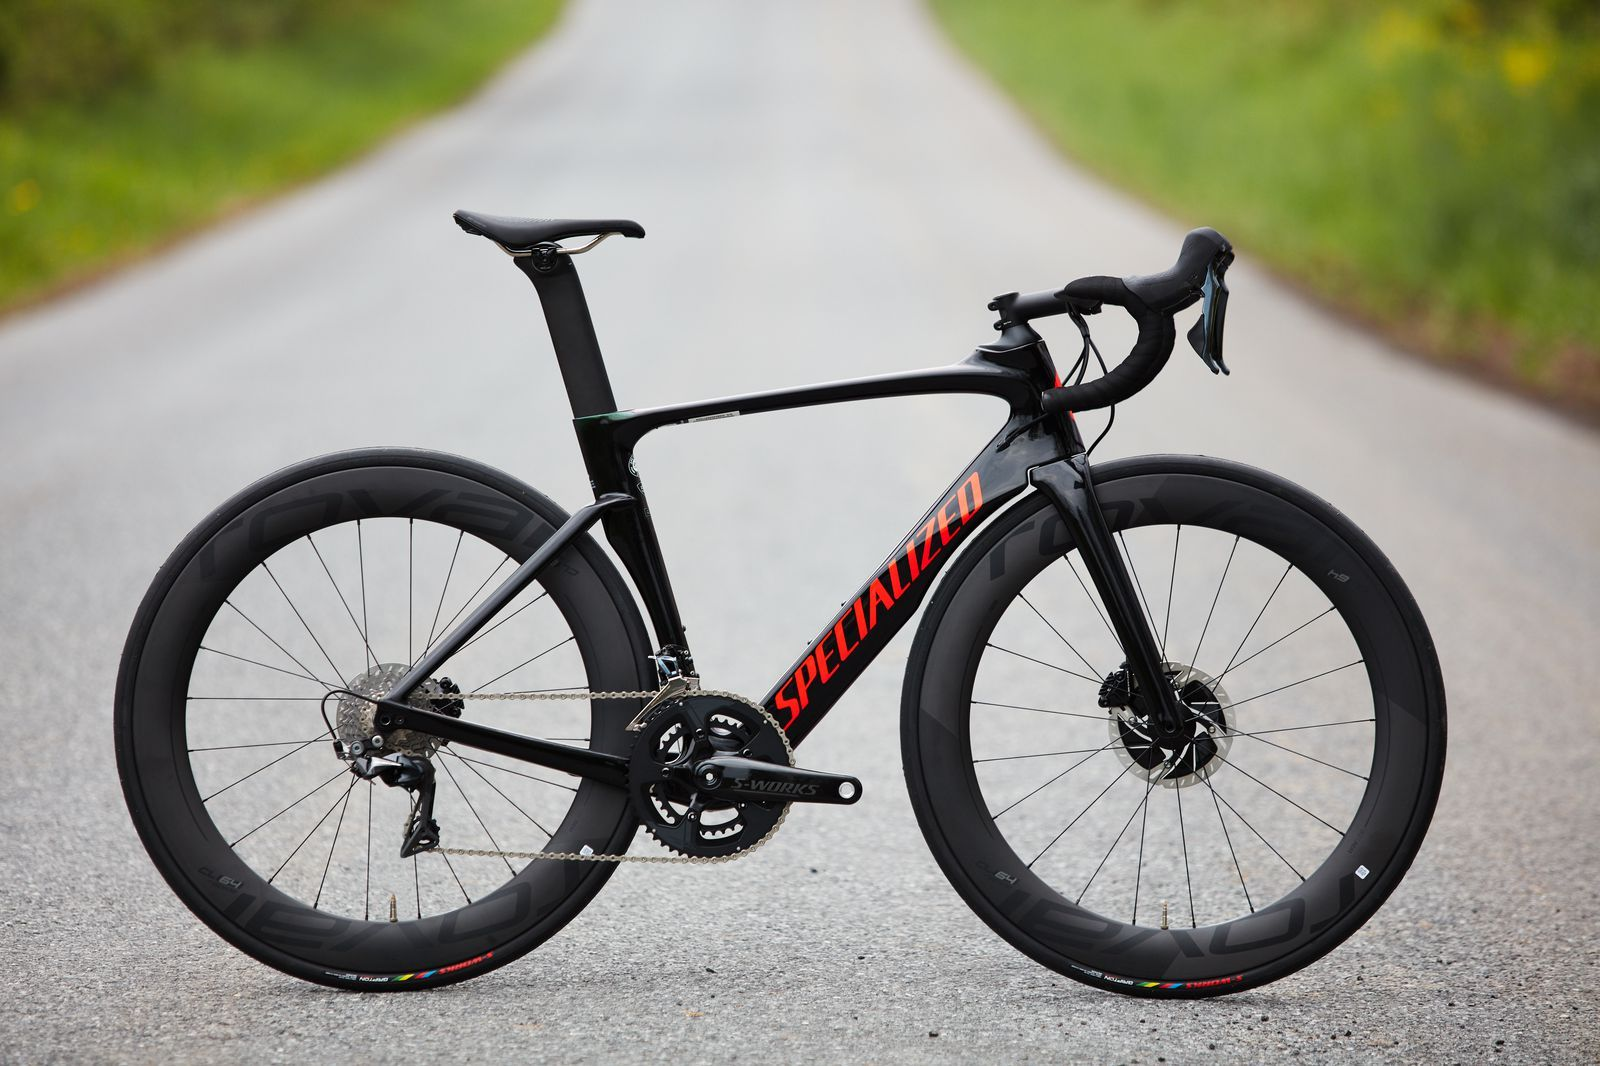 The Specialized Venge Pro Disc Is One Of The Fastest Bikes We Ve